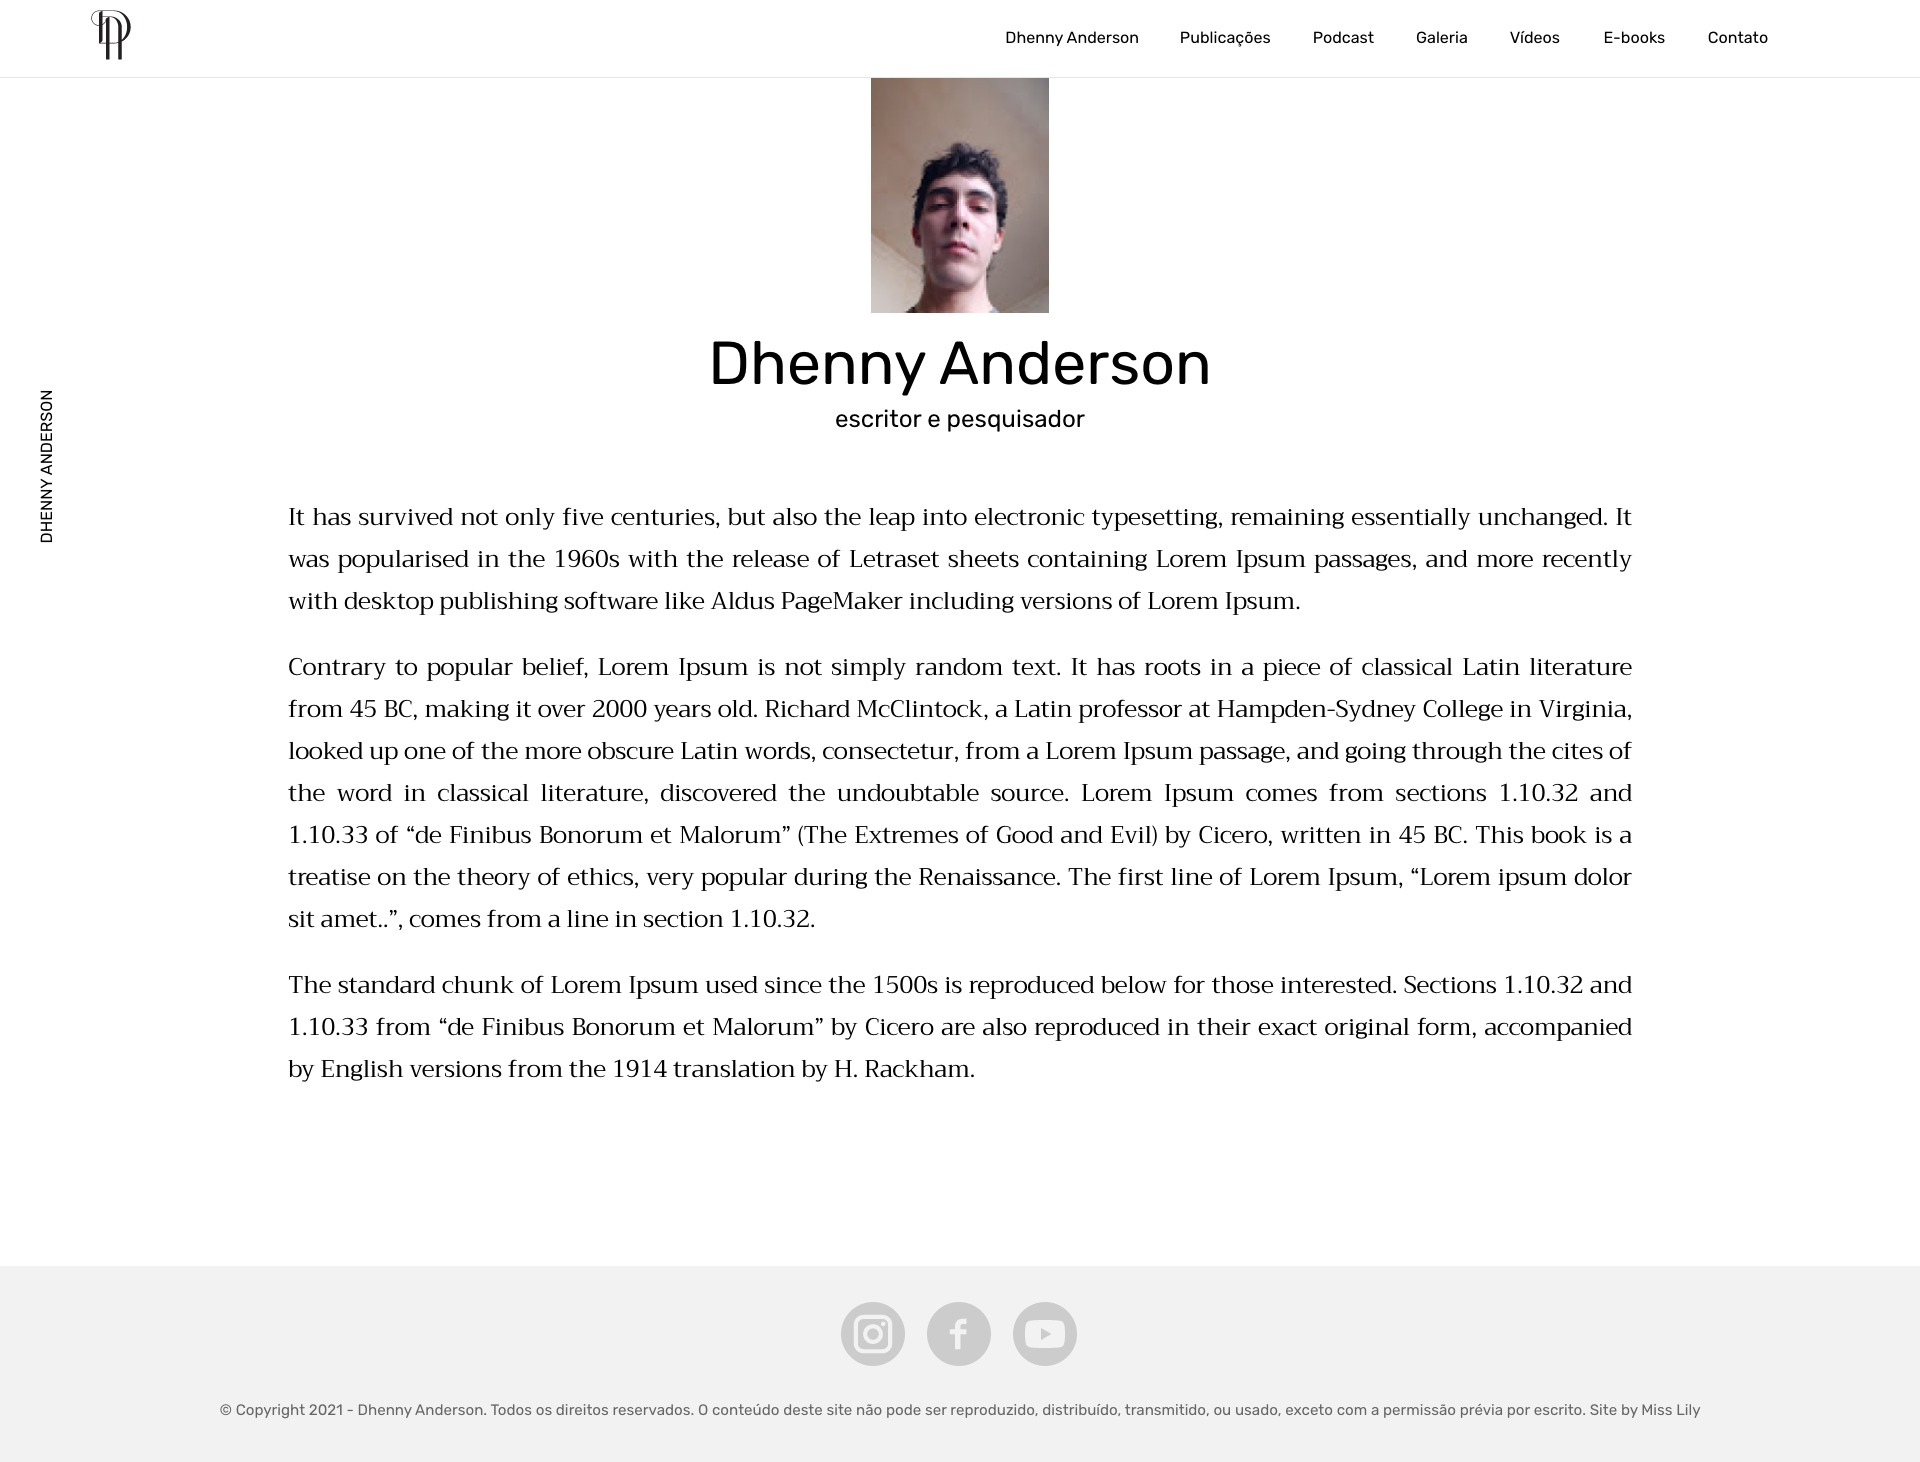 Dhenny Anderson - Dhenny Anderson